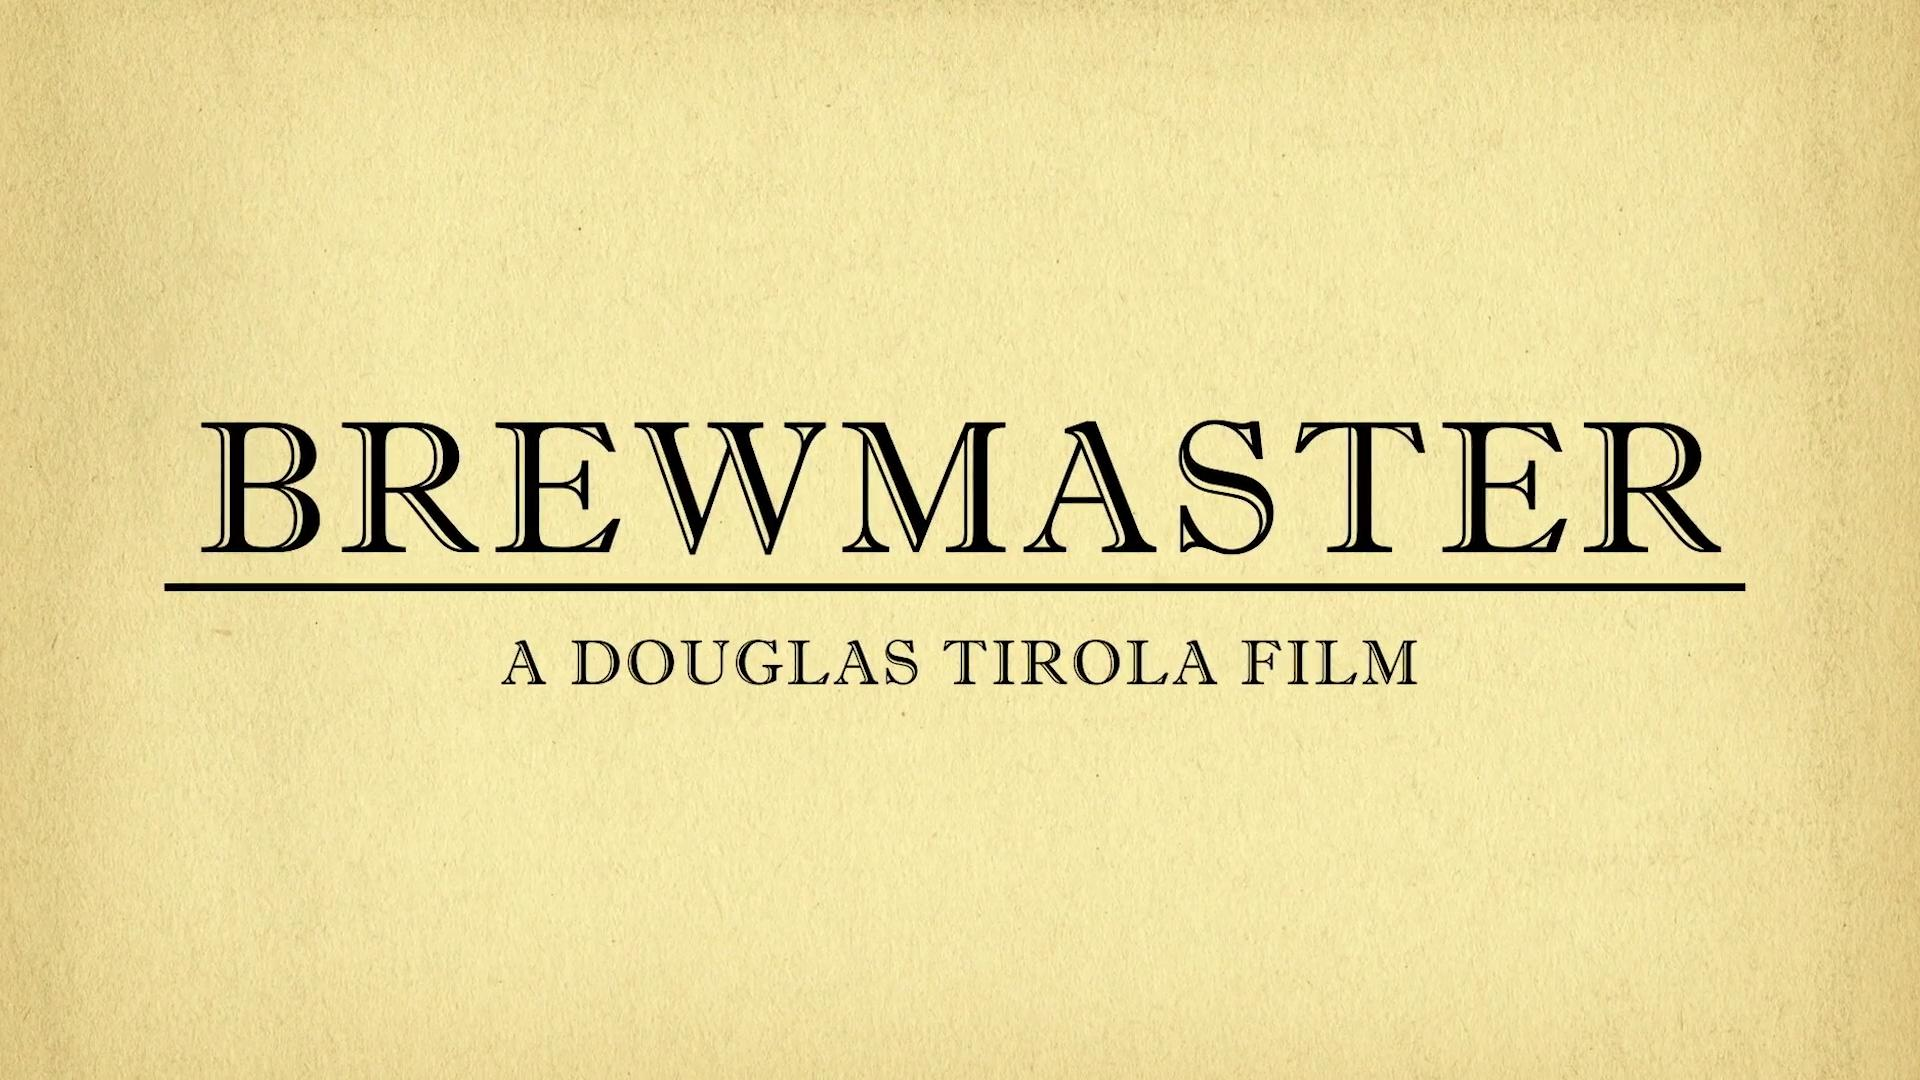 'Brewmaster' Documentary Is a Portrait of Craft Beer Culture